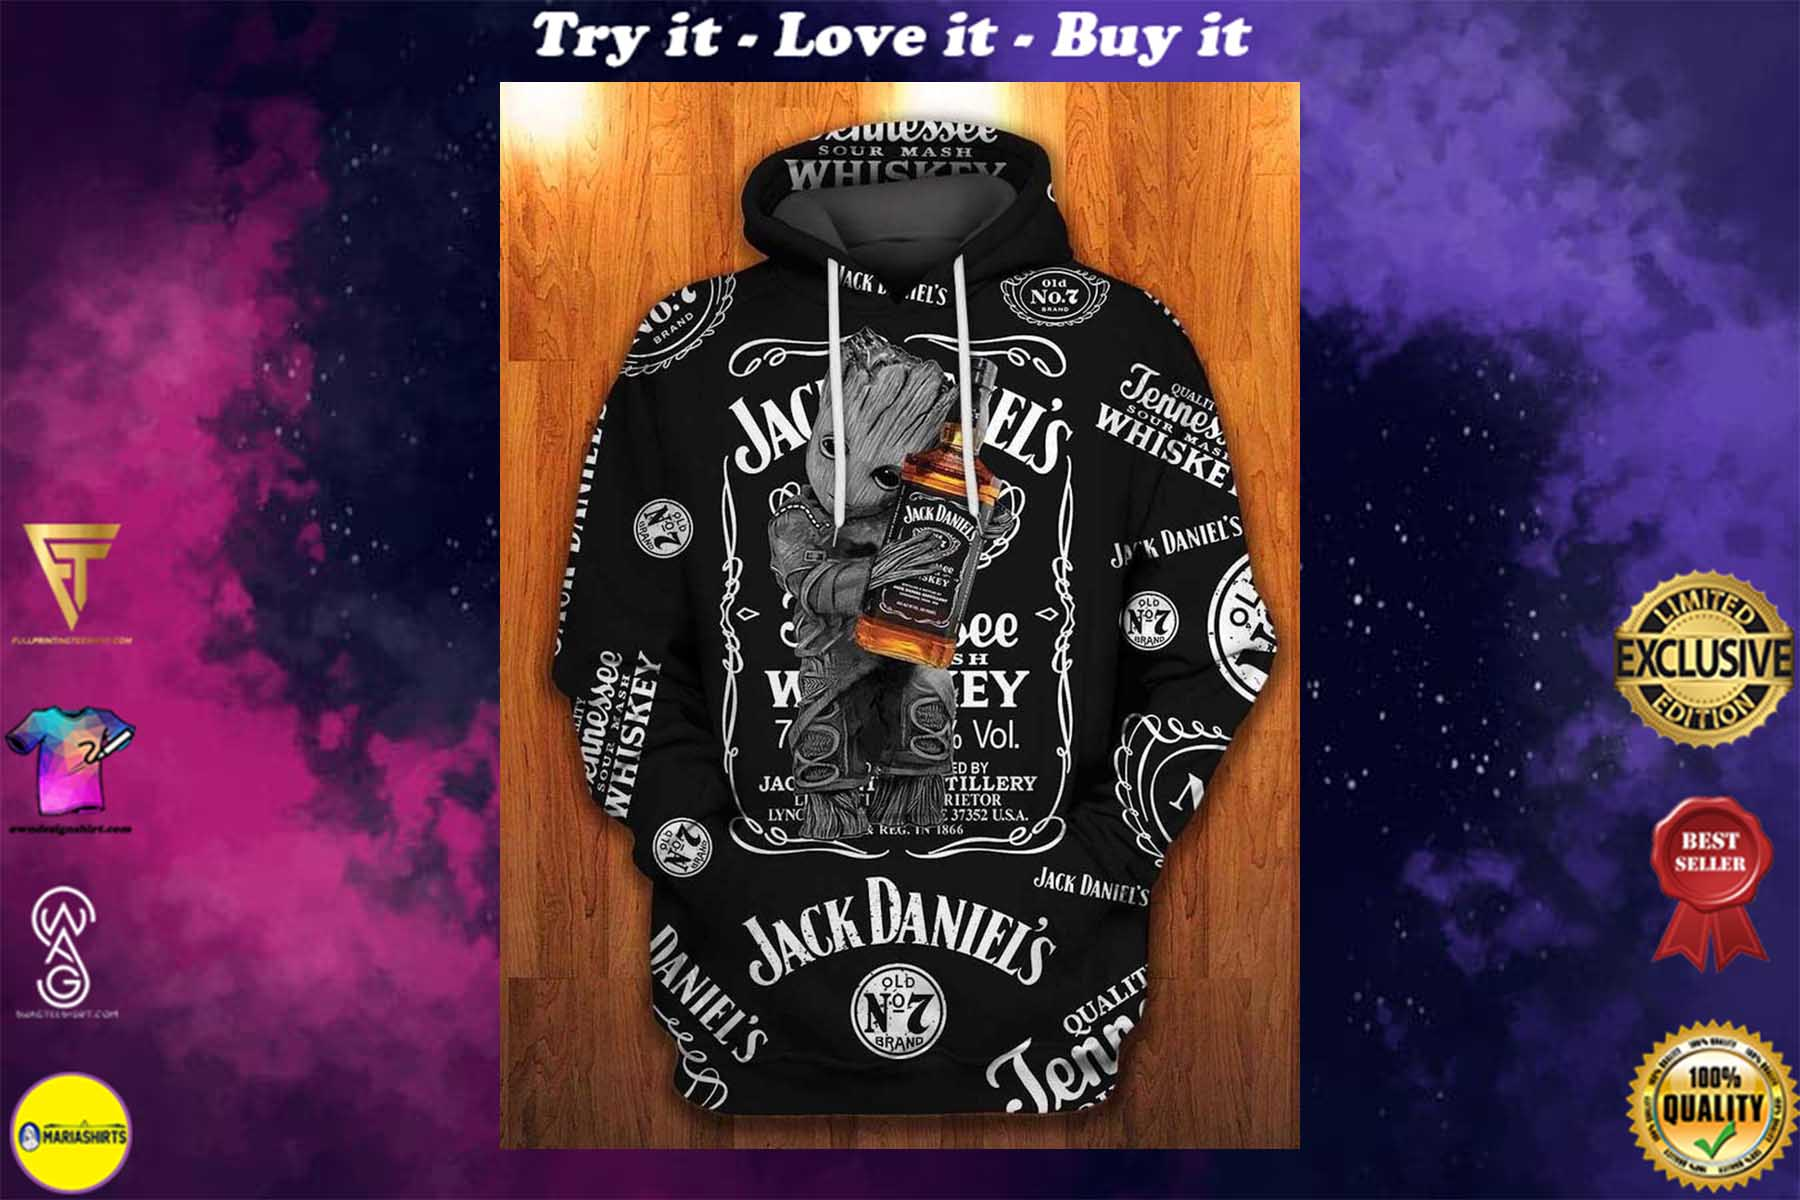 [special edition] groot loves jack daniels old number 7 full printing shirt - maria